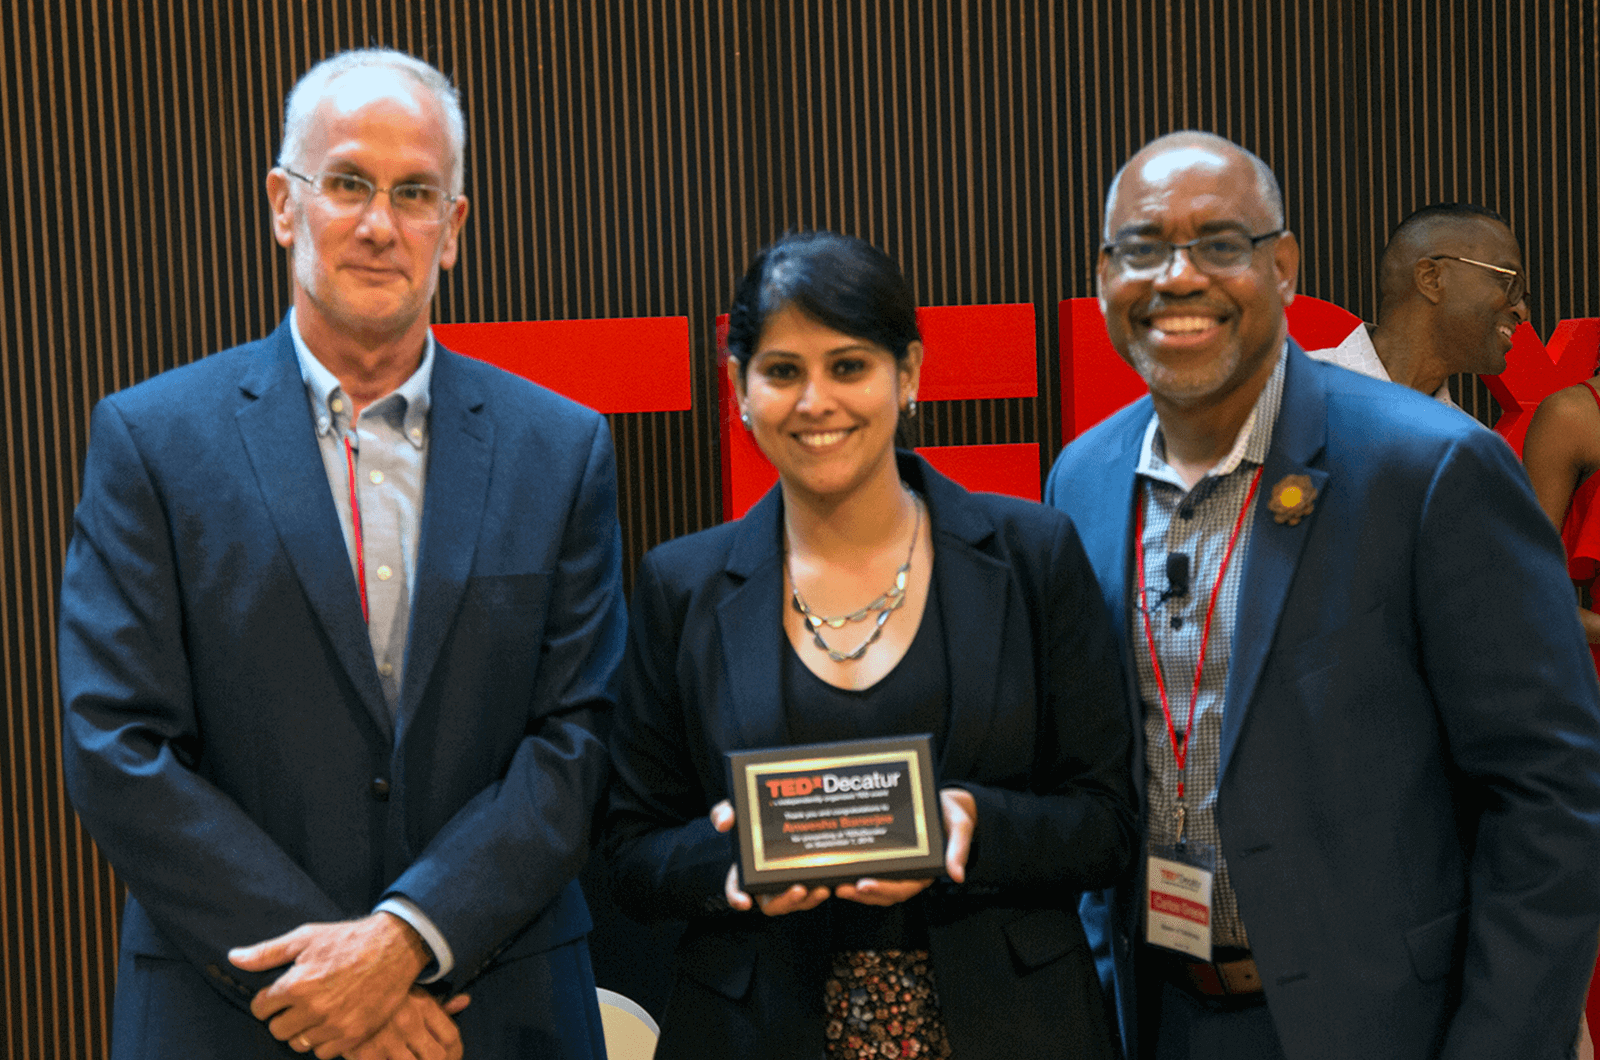 Anwesha Banerjee stands in between Toastmasters Carlos Greene and Daniel Enger while holding a plaque